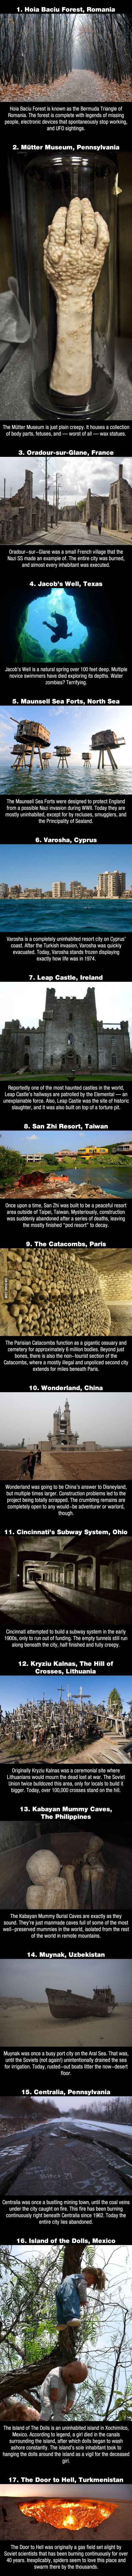 The 17 scariest places on Earth. Dare to live in any one of them for a month for 1 Million?